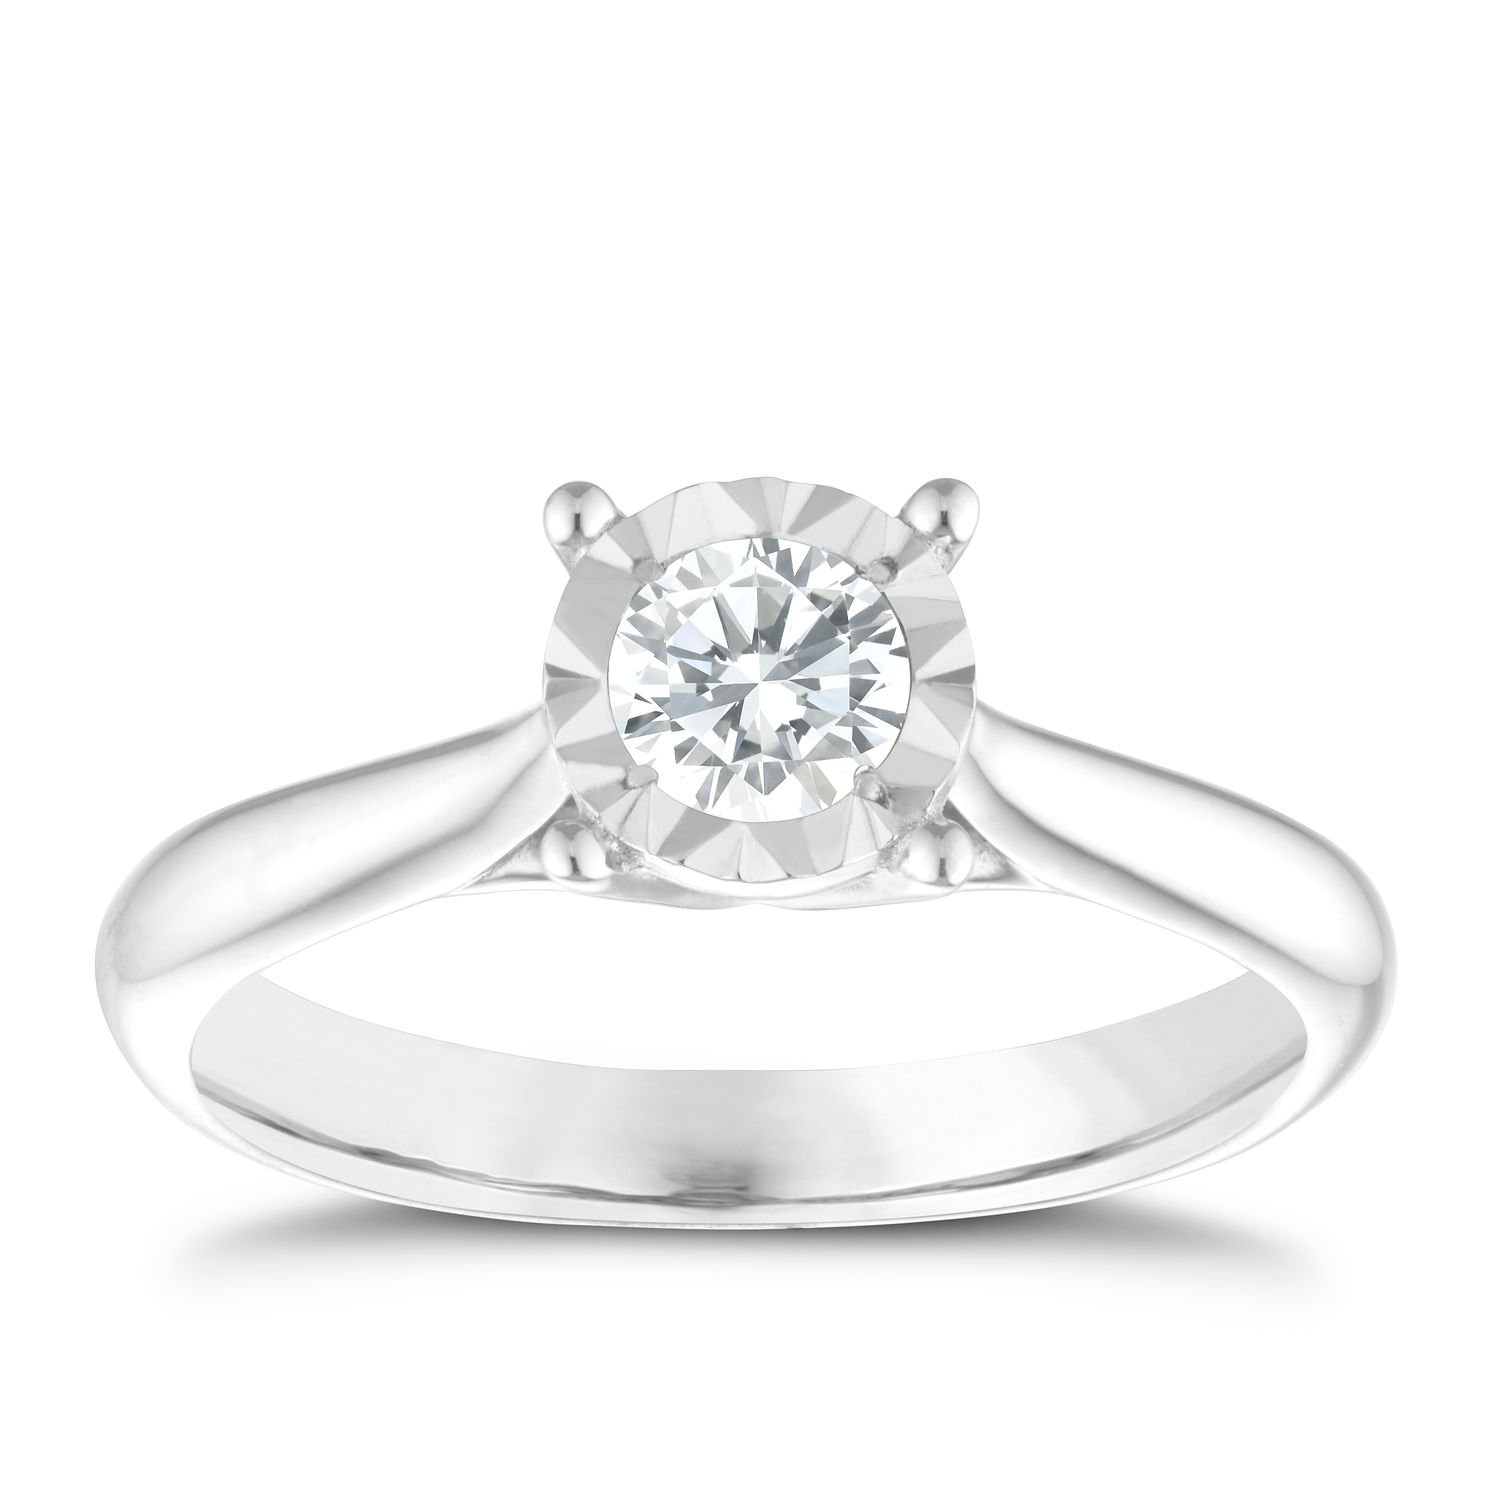 9ct White Gold 0.33ct Diamond Solitaire Ring - Product number 9910581